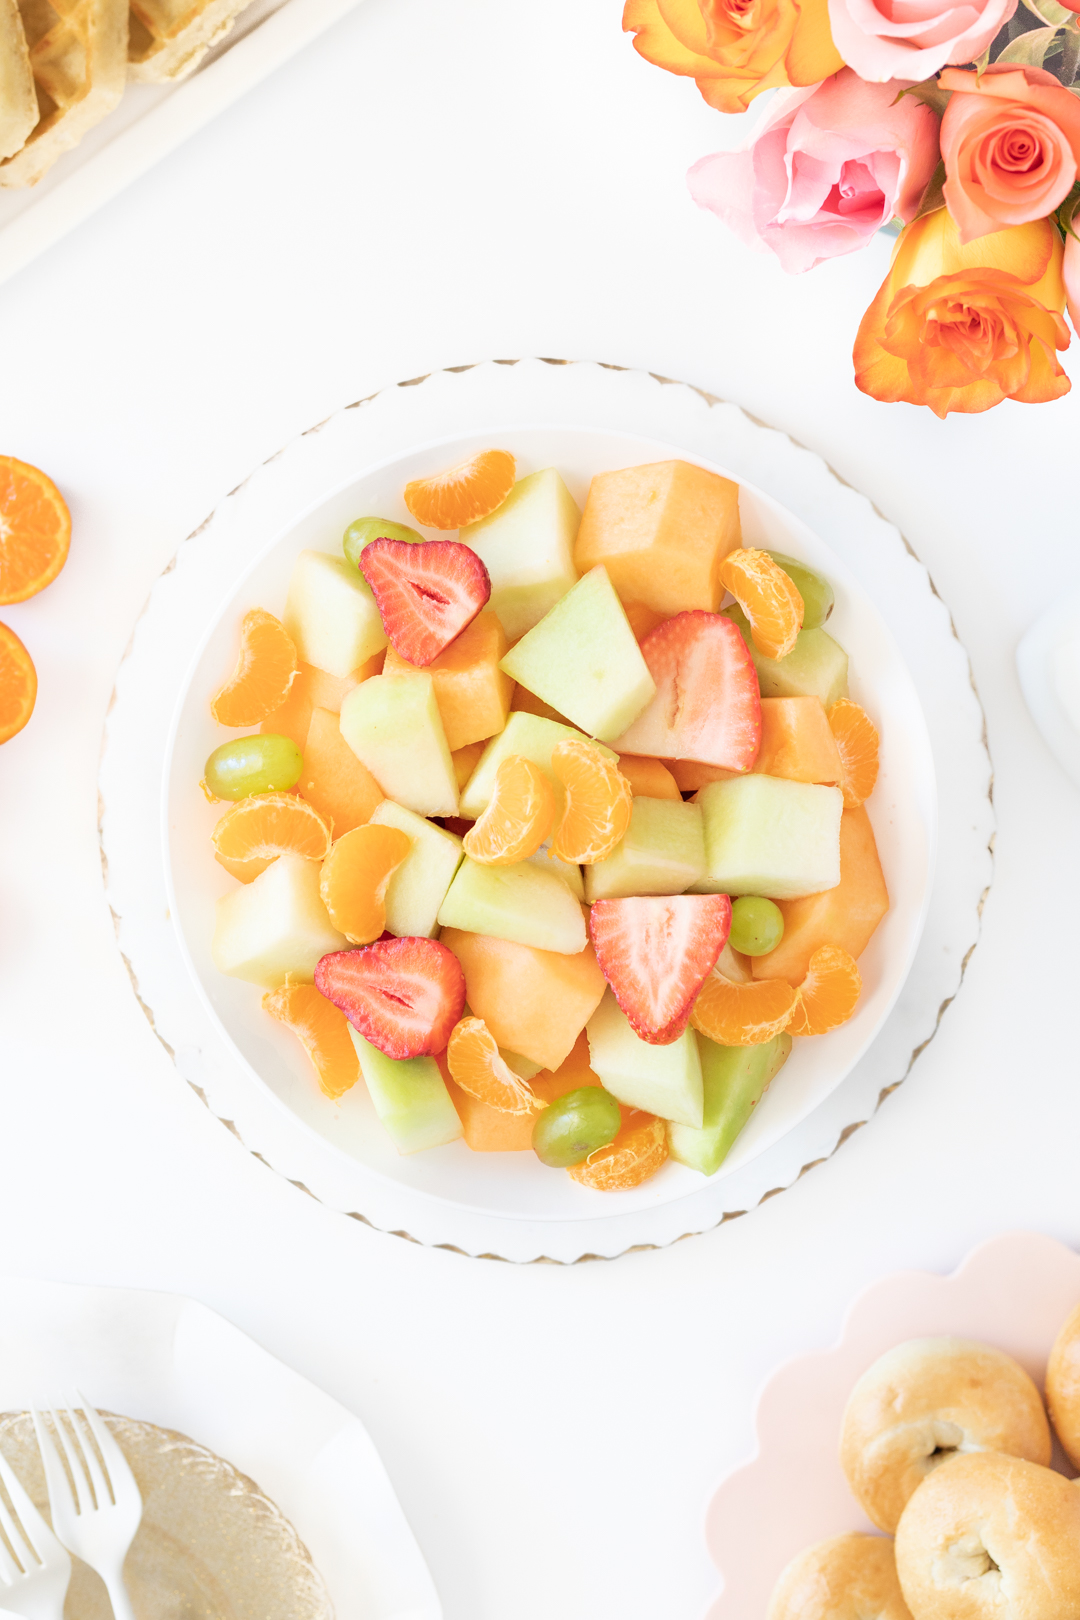 fruit salad with cuties mandarins